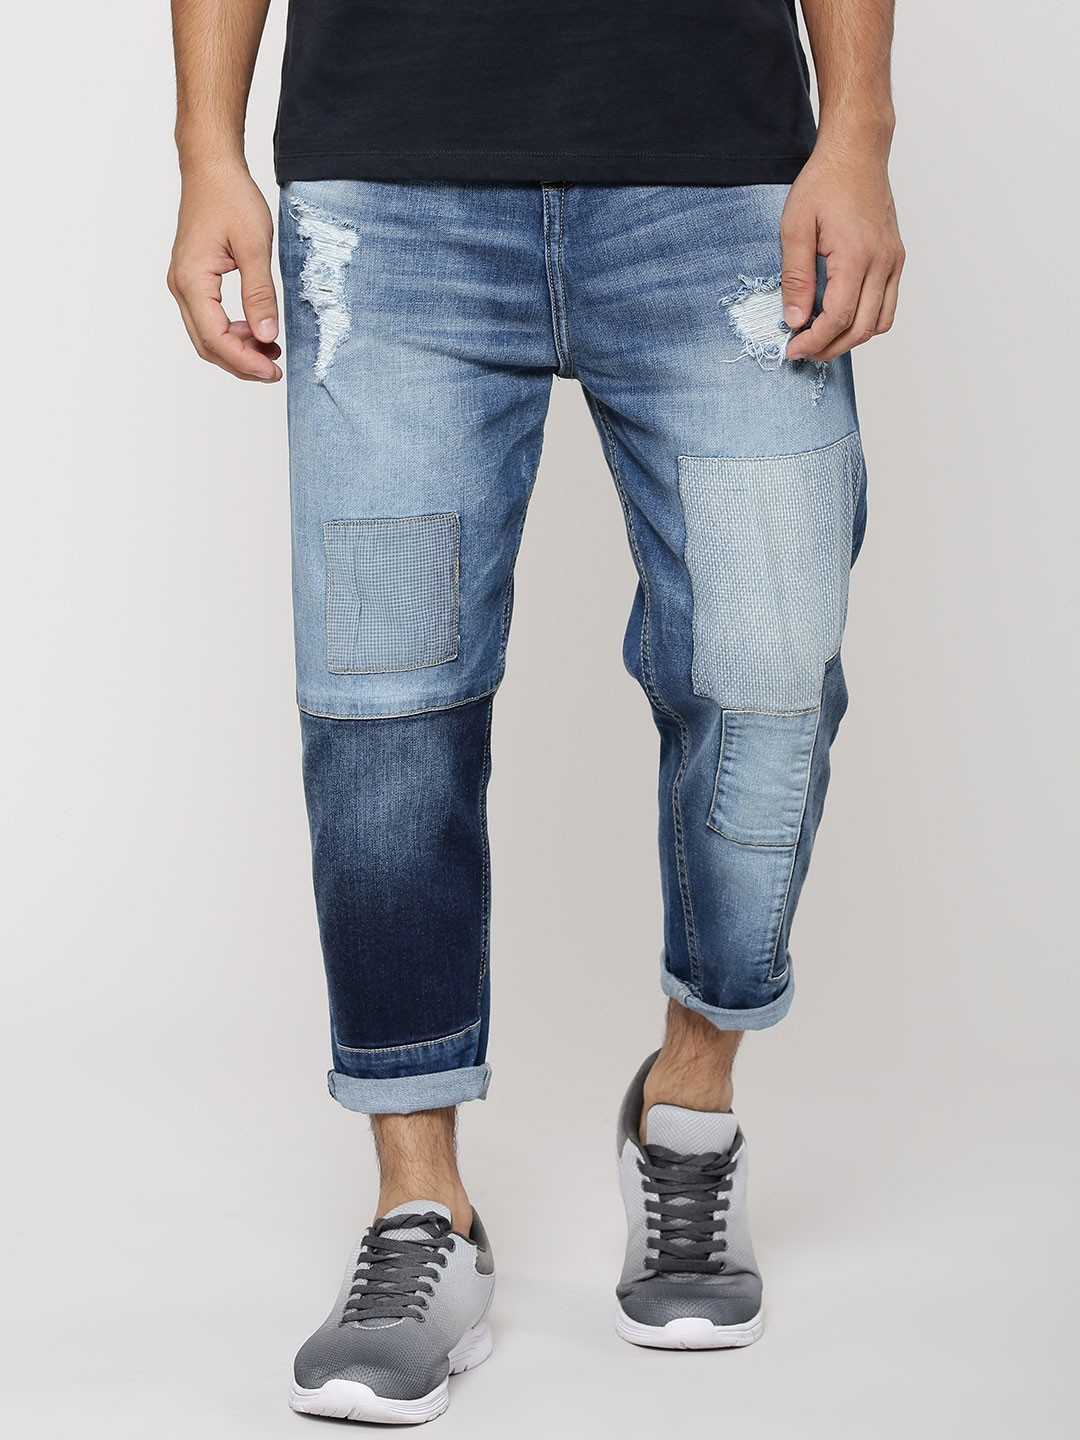 Cropped Jeans for Men